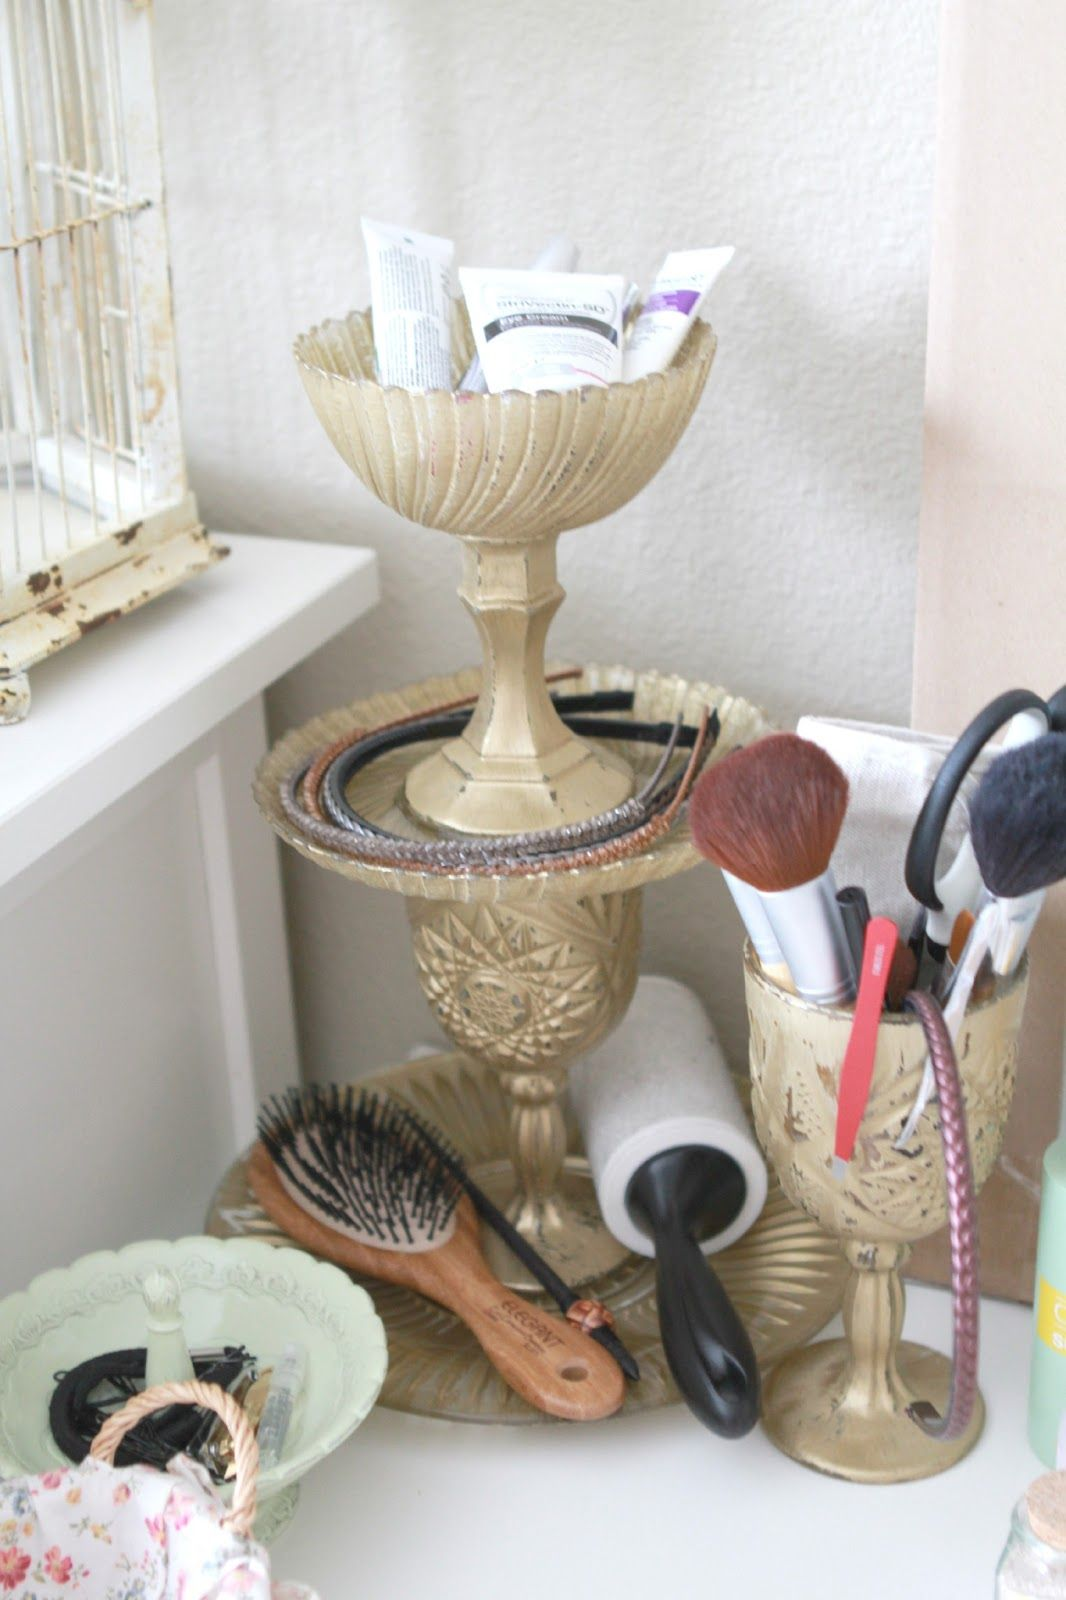 Diy vanity table organizer love this great ideas for the home